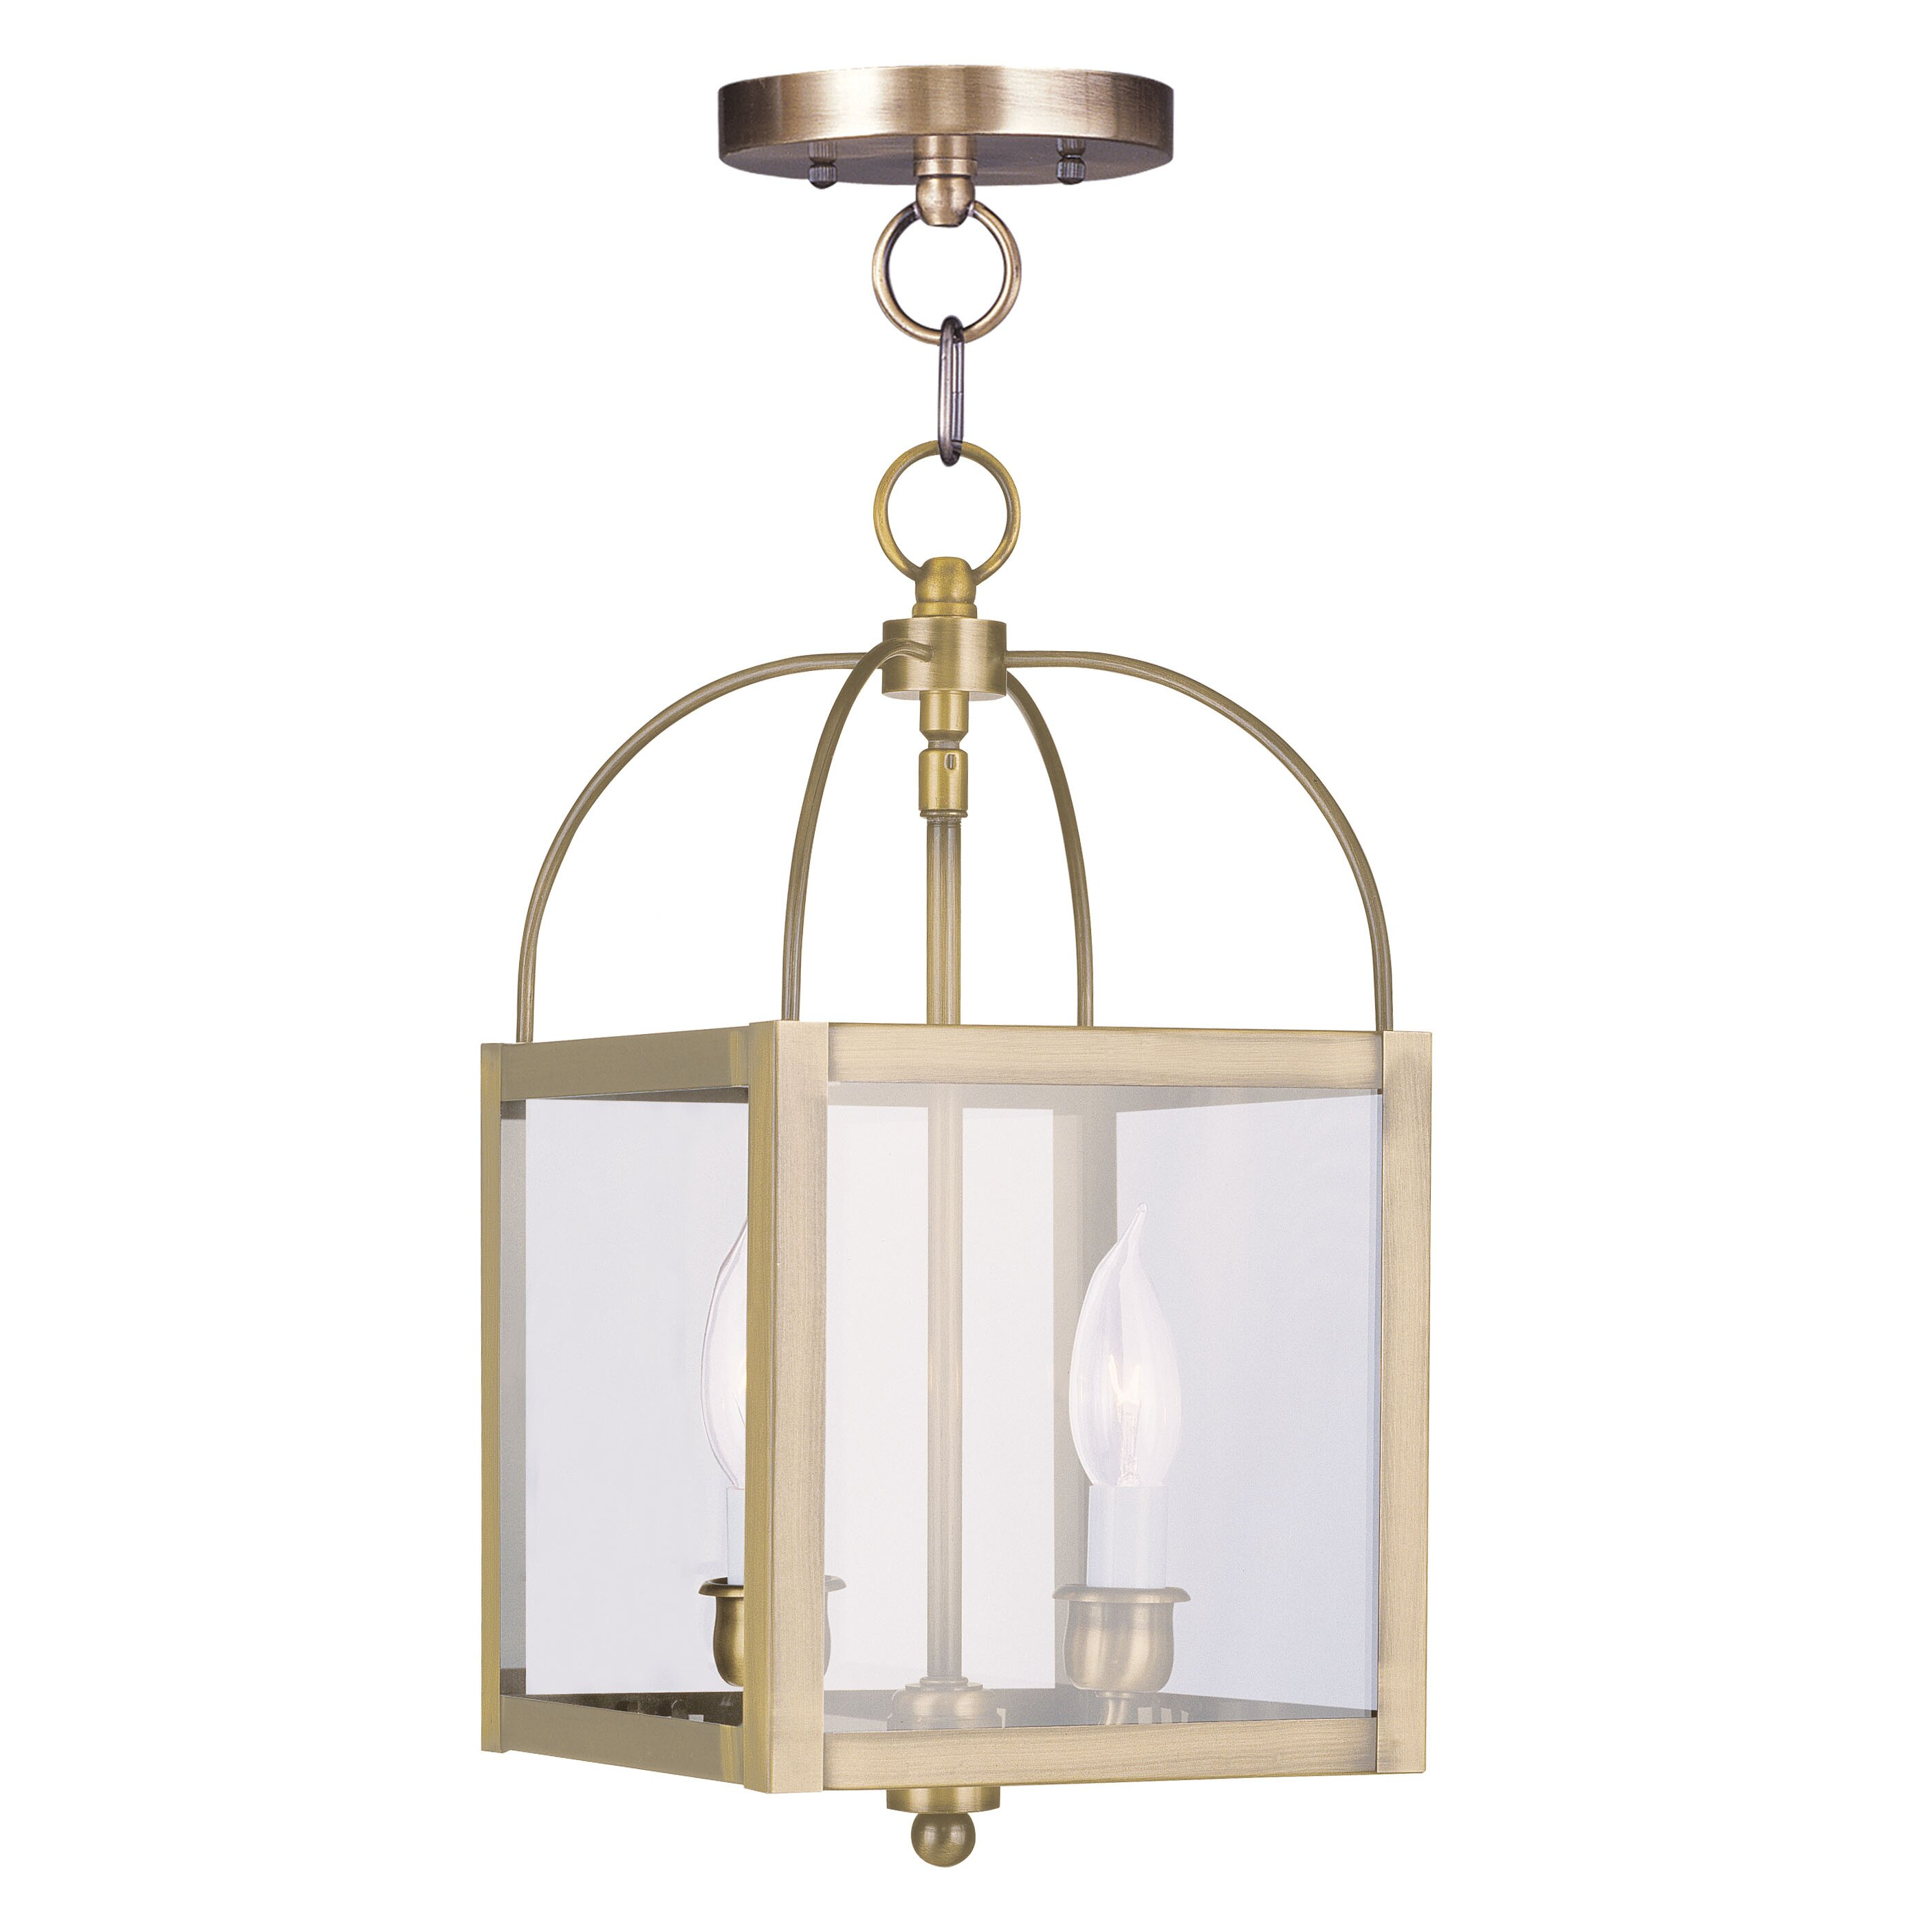 Foyer Ceiling Queen : Wildon home mendom convertible light foyer pendant